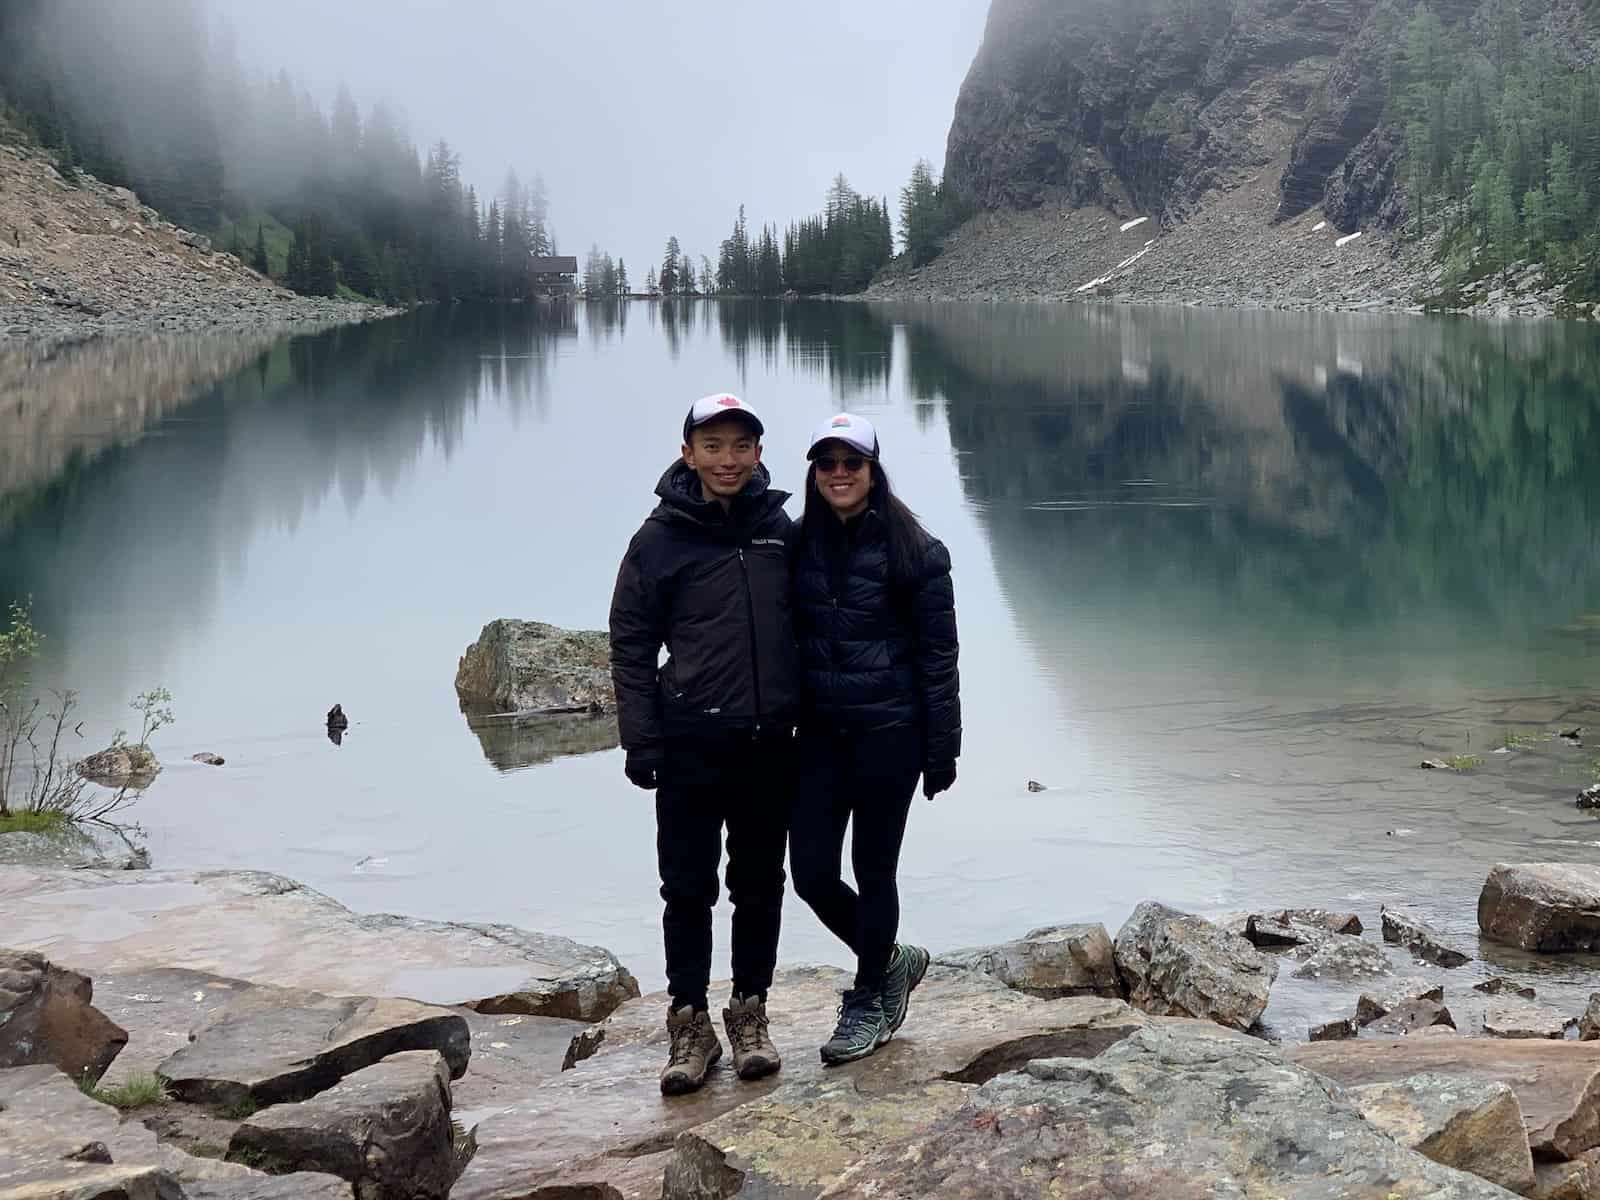 A man and woman stand in front of a mountain lake